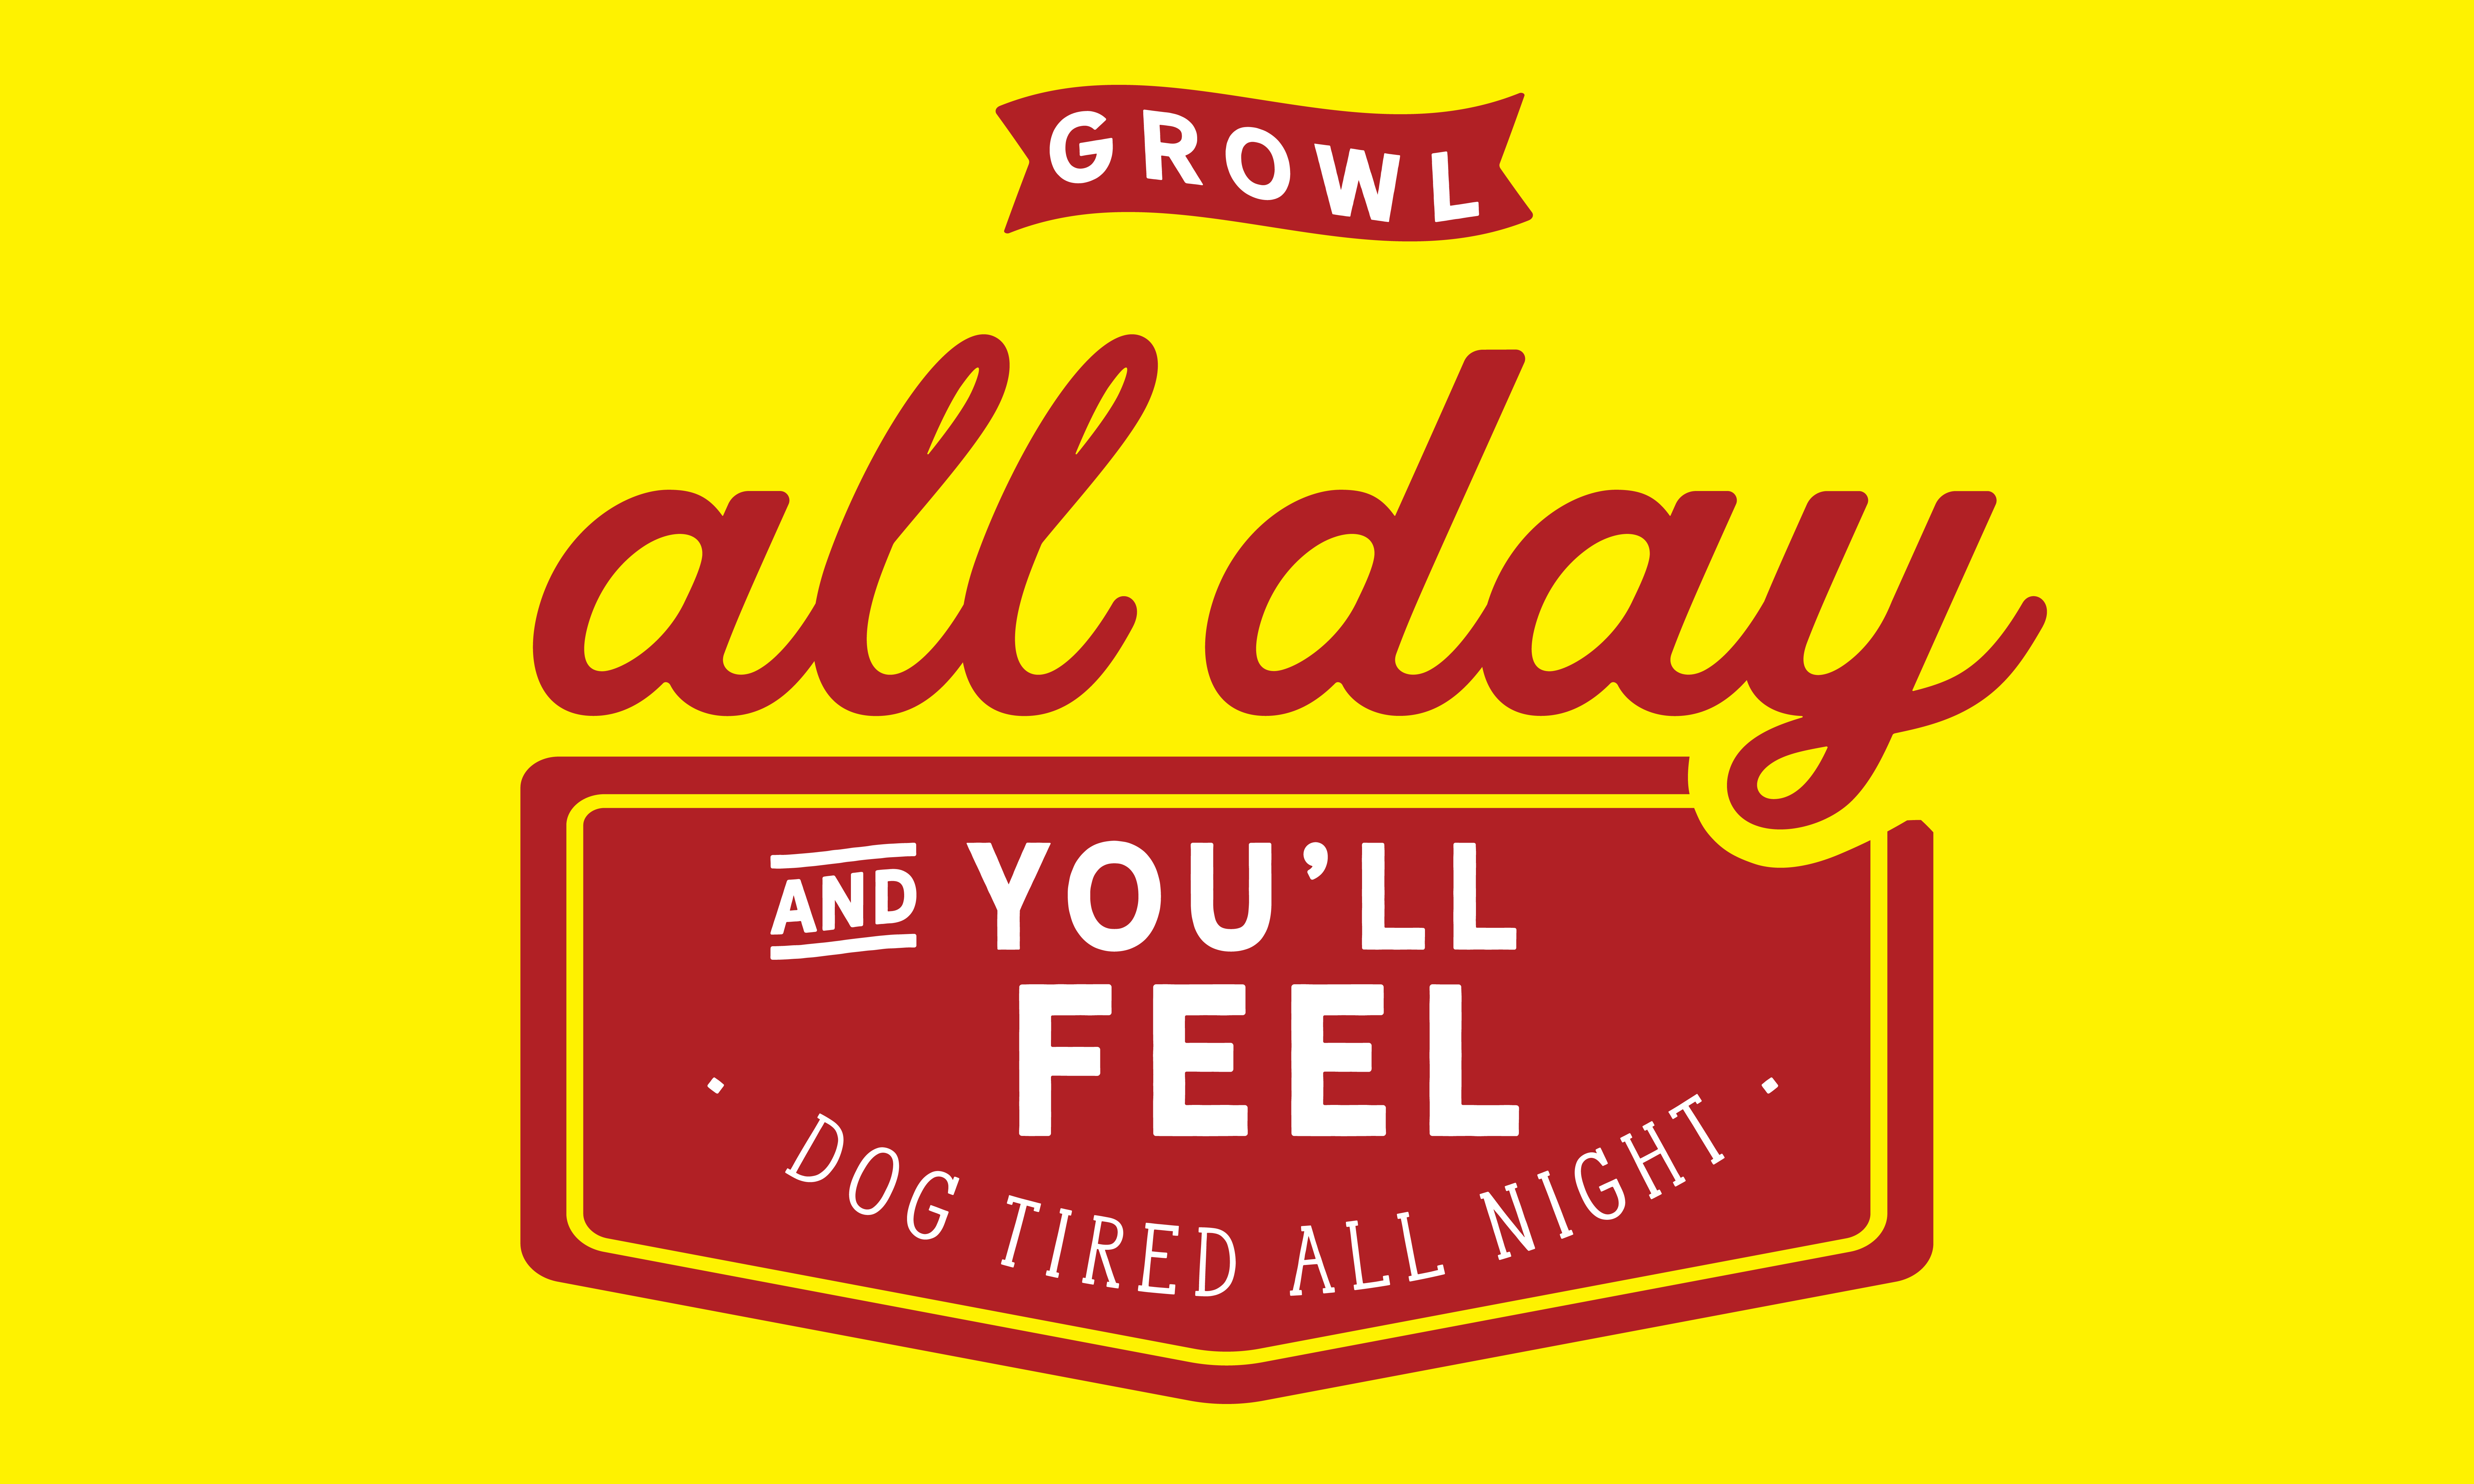 Download Free You Ll Feel Dog Tired All Night Graphic By Baraeiji Creative for Cricut Explore, Silhouette and other cutting machines.